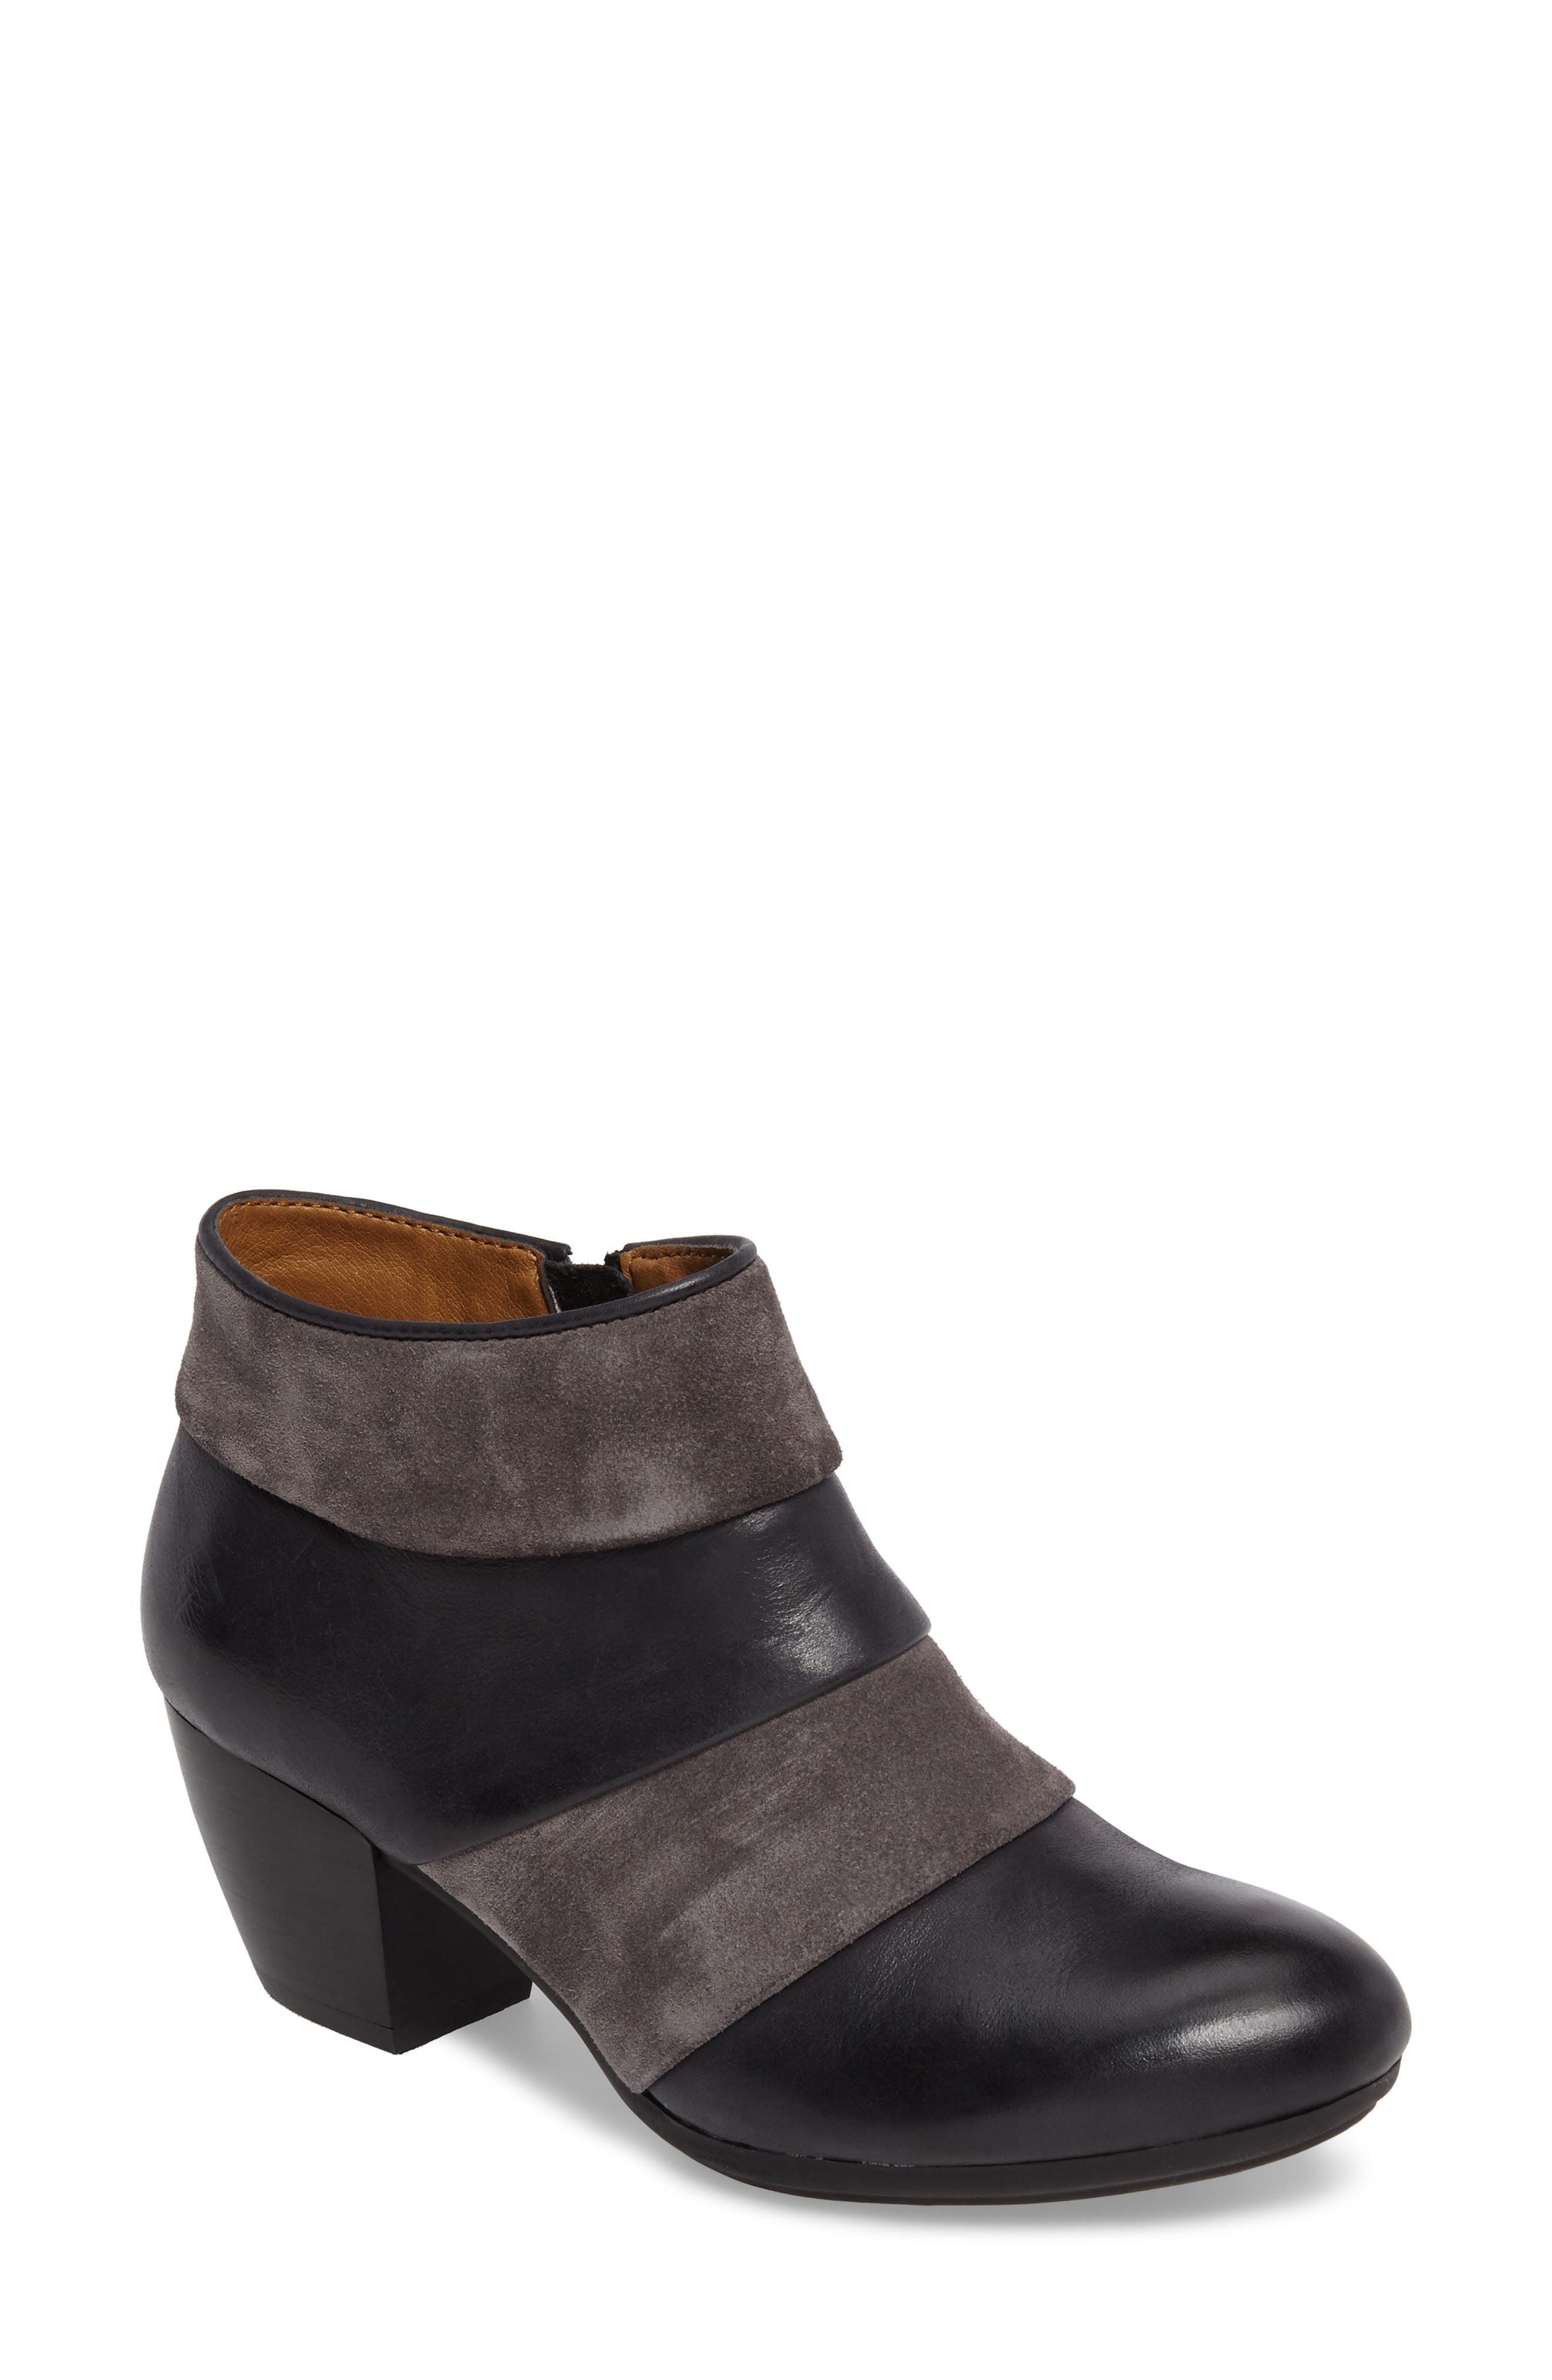 Amesbury Colorblock Bootie,                             Main thumbnail 1, color,                             Black/ Steel Grey Leather